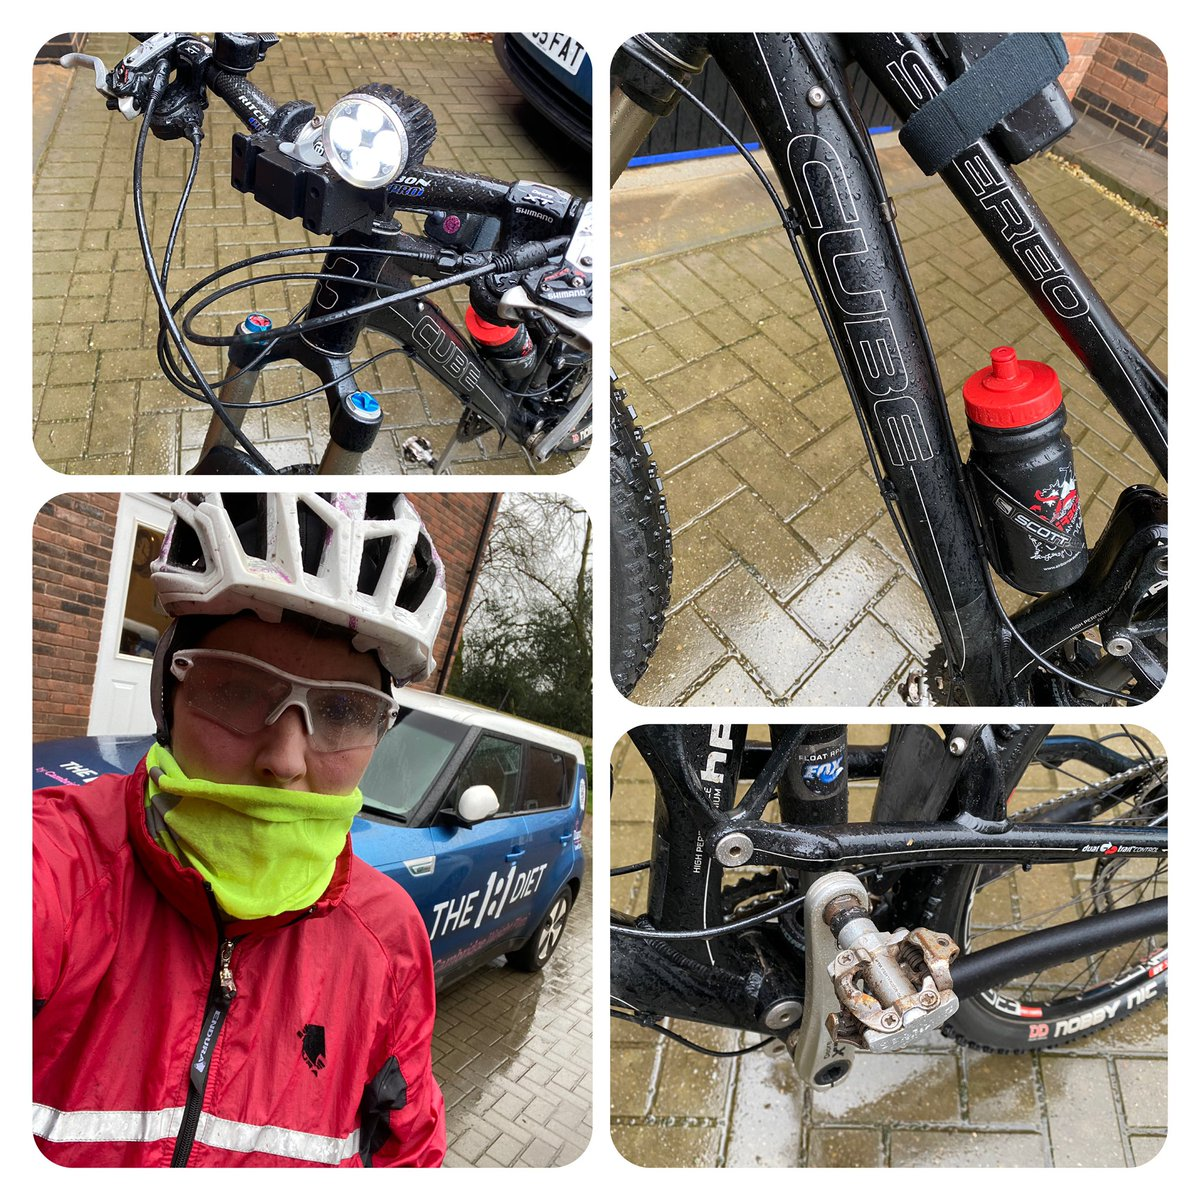 It's cold, wet & dull so I didn't really want to train today but with #ChineseNewYear celebrations later I committed to double training yesterday, the same tomorrow with a normal uphill session today & I'm so glad I did as I love #biking more #mountainbiking than road #thisweekpic.twitter.com/ZAOSljXKMi